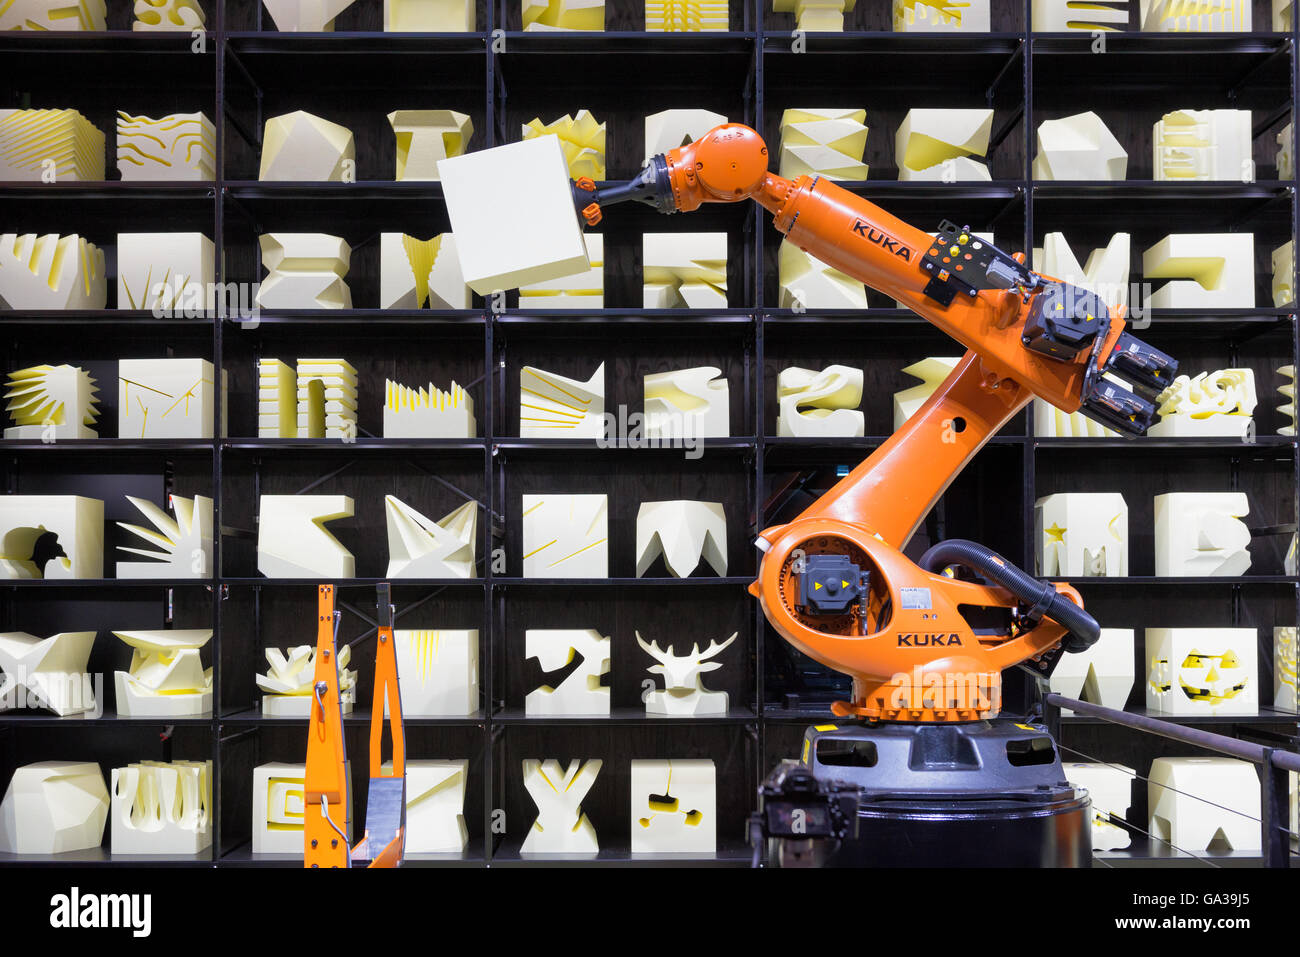 Robot Arm at Cebit - Stock Image